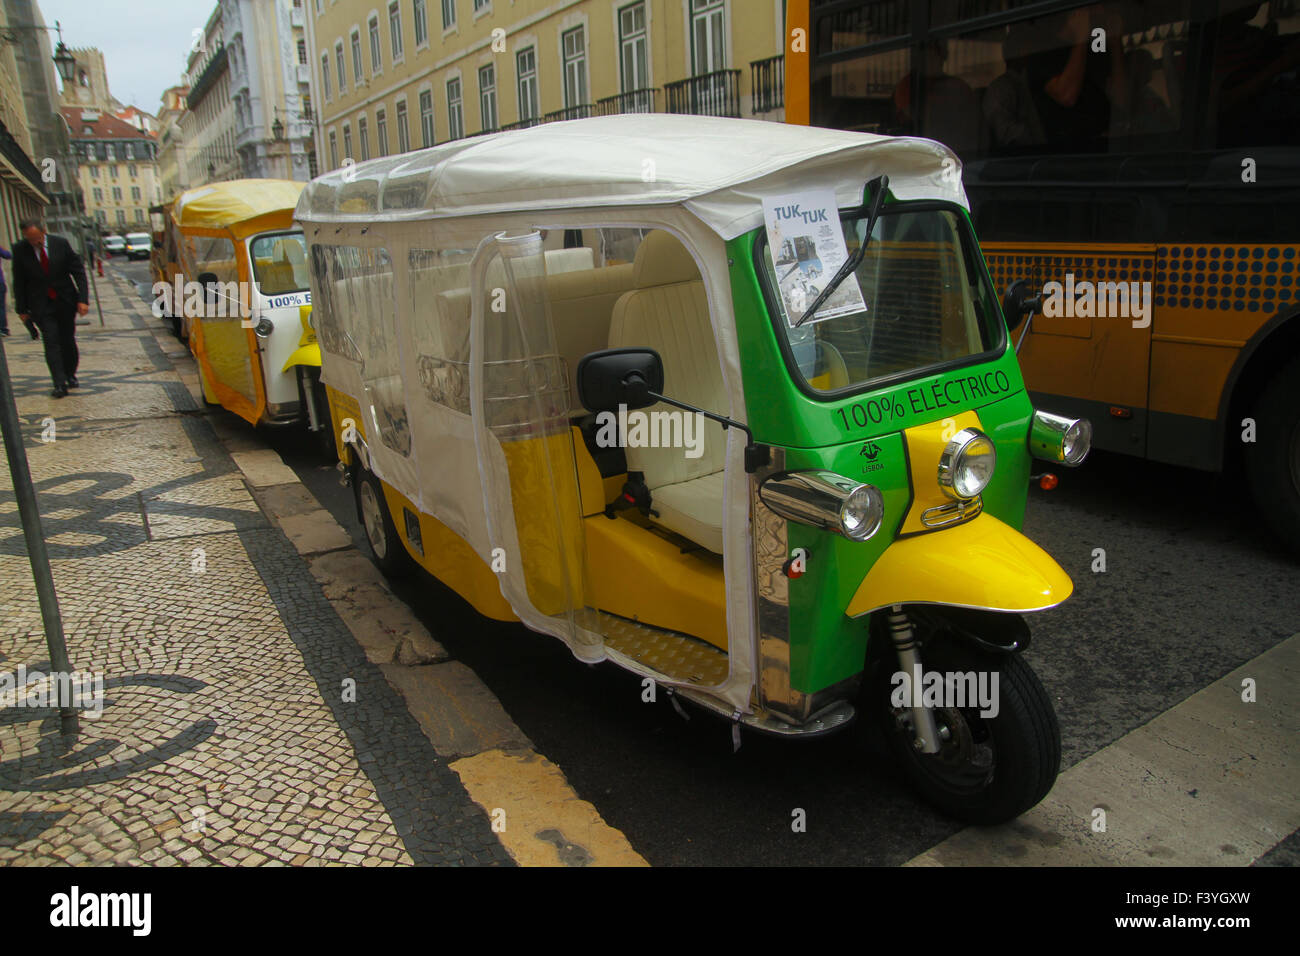 ​Lisbon, Portugal, 5 October, 2015. A electric tuk-tuk on the streets of Lisbon. The tuk-tuk provide tailor-made - Stock Image